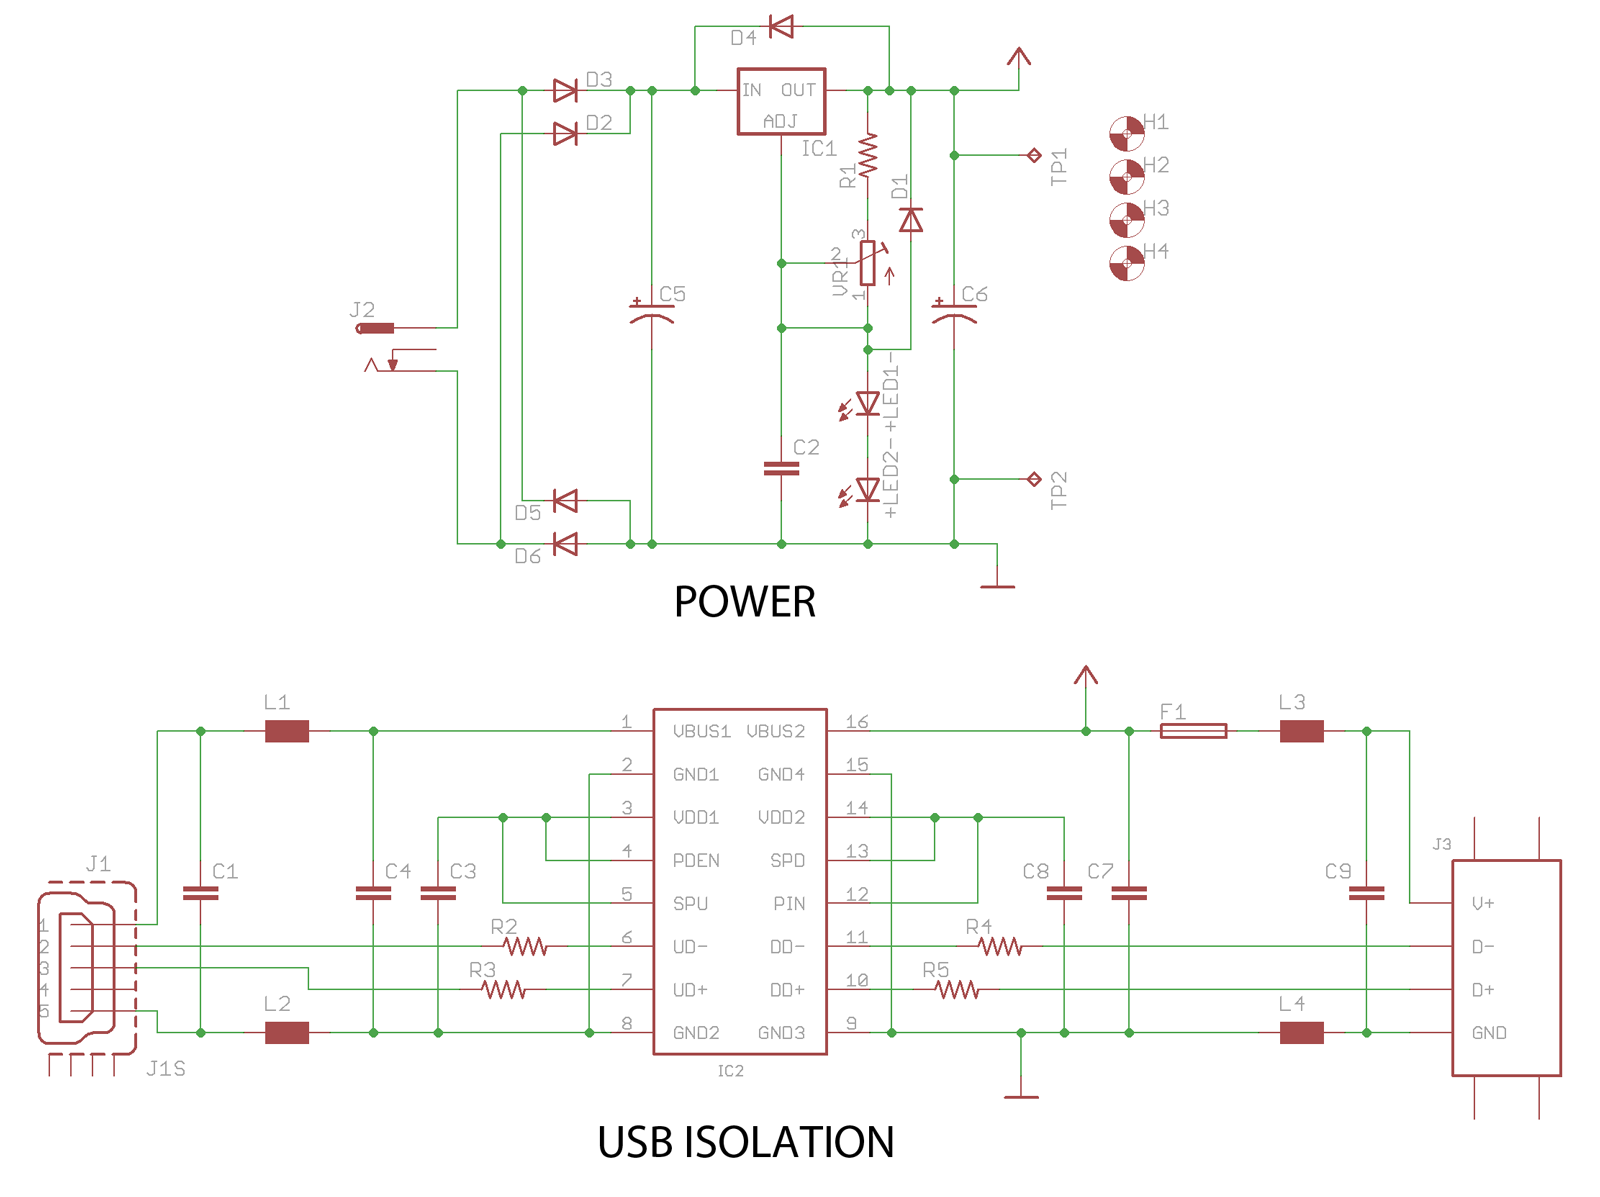 Looking To Make A Linear Regulated 5 Volt Power Supply Suggestions Circuit Look At The Top Of Image For Section Avro Changed Things Up By Using Leds Drop Controlling Voltage Set On Lm317 Both More